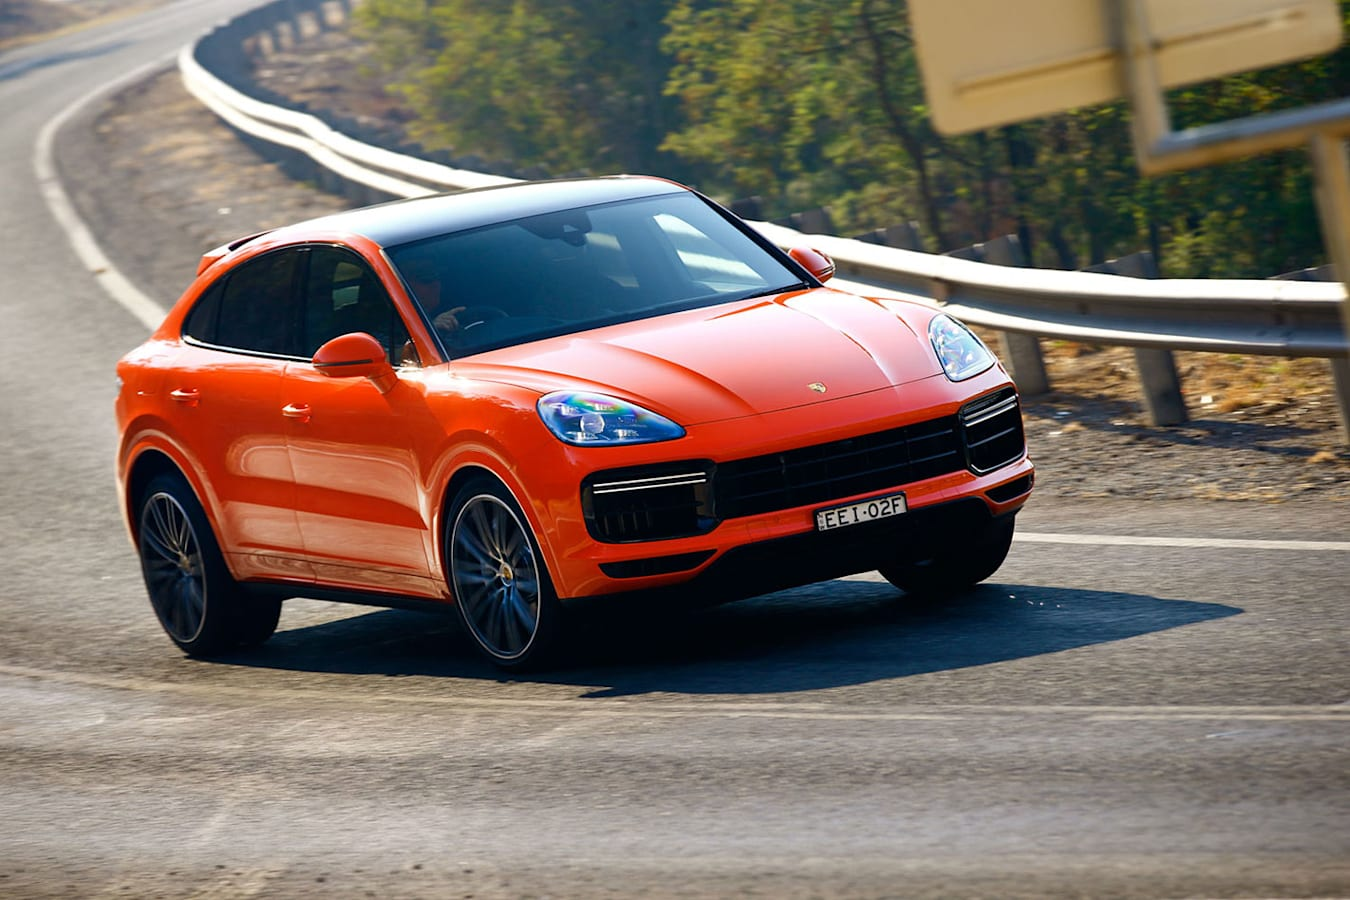 2020 Porsche Cayenne Turbo Coupe steering